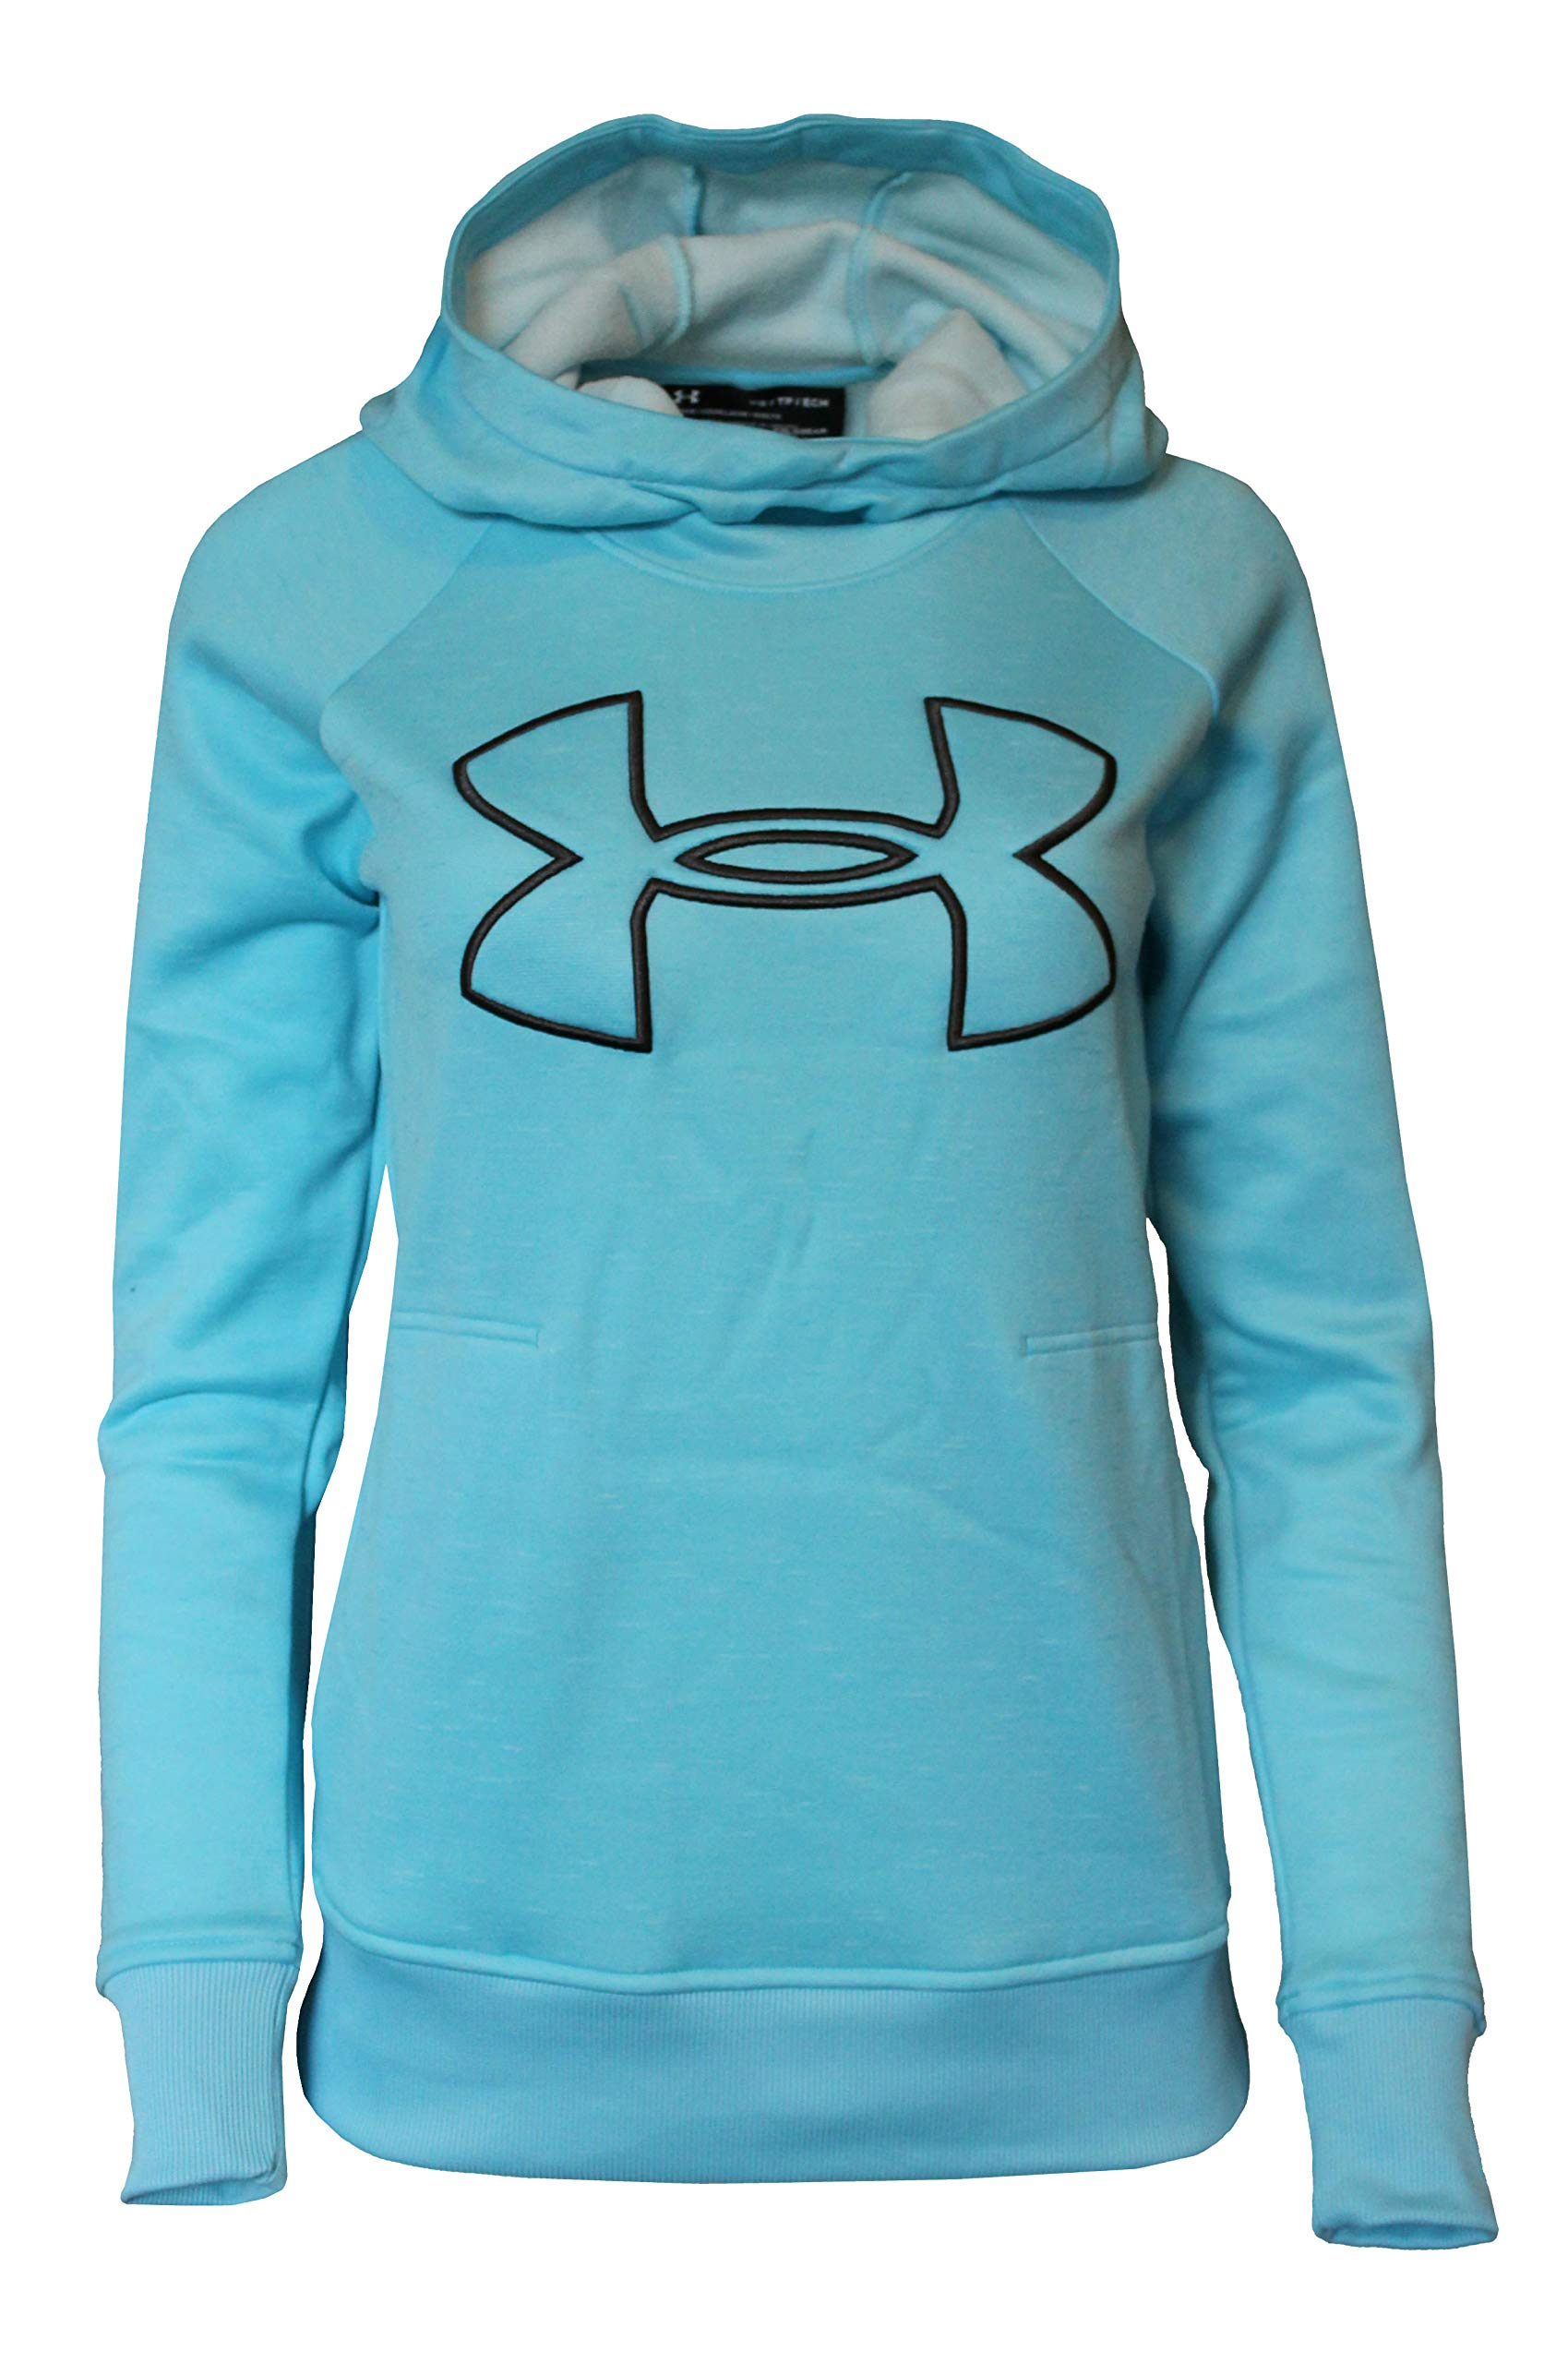 Under Armour Women's Hoodie Active Big Logo Pullover 1318396 (Venetian Blue, S) by Under Armour